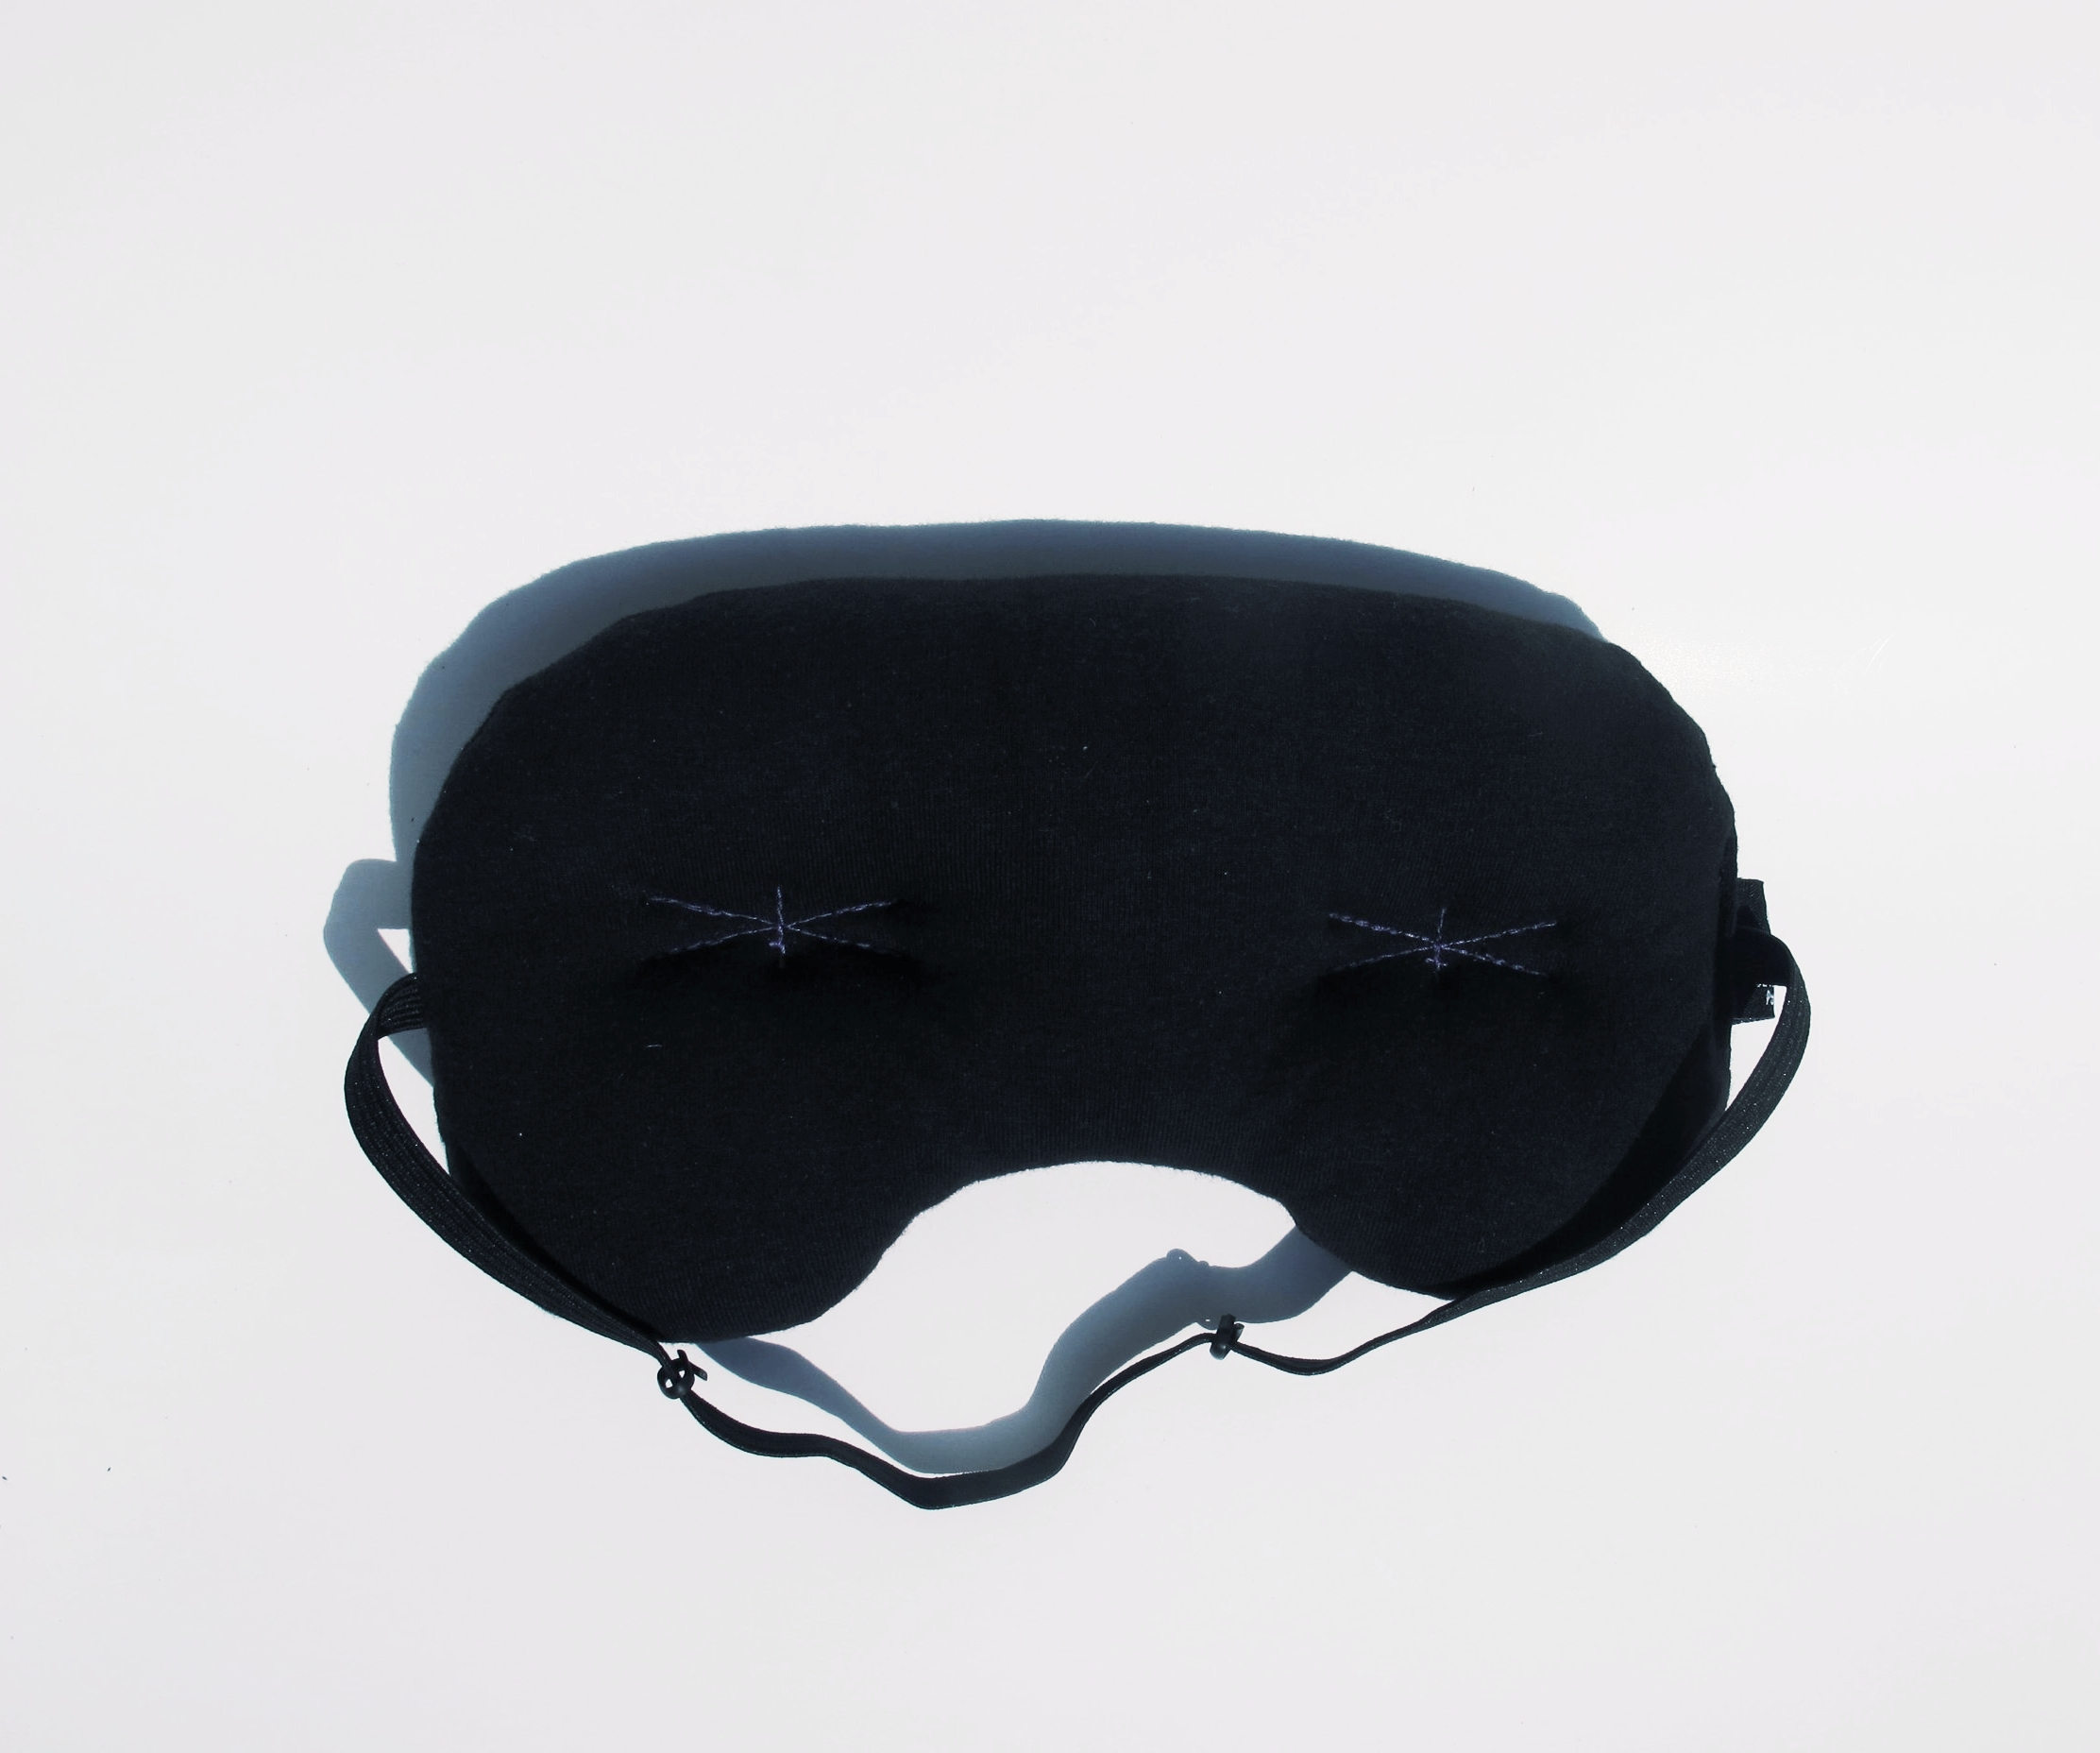 medical-grade pain-relief sleep mask